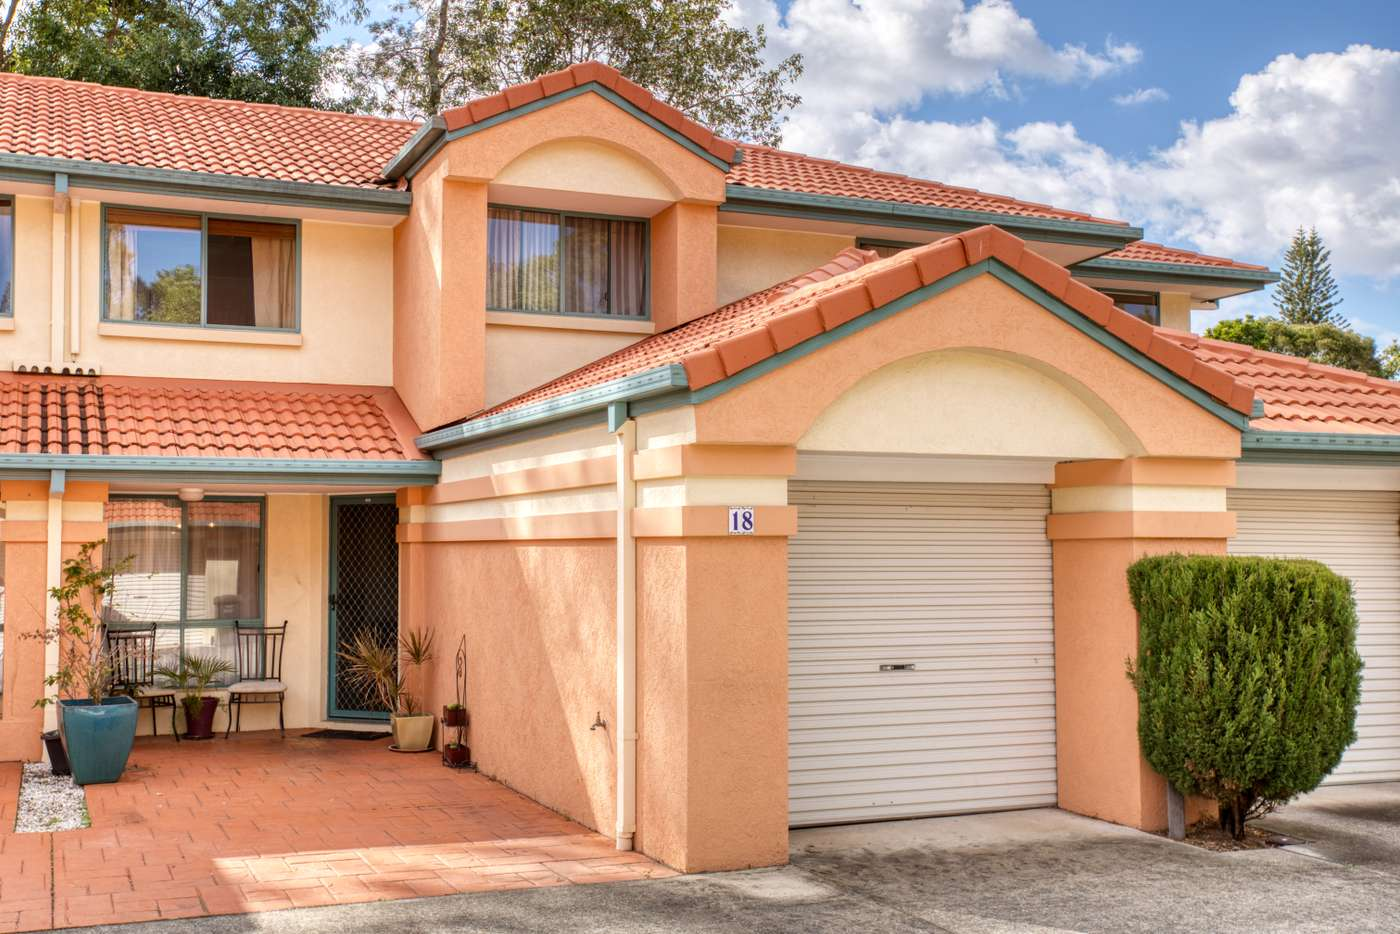 Main view of Homely townhouse listing, 18/2 Pappas Way, Carrara QLD 4211